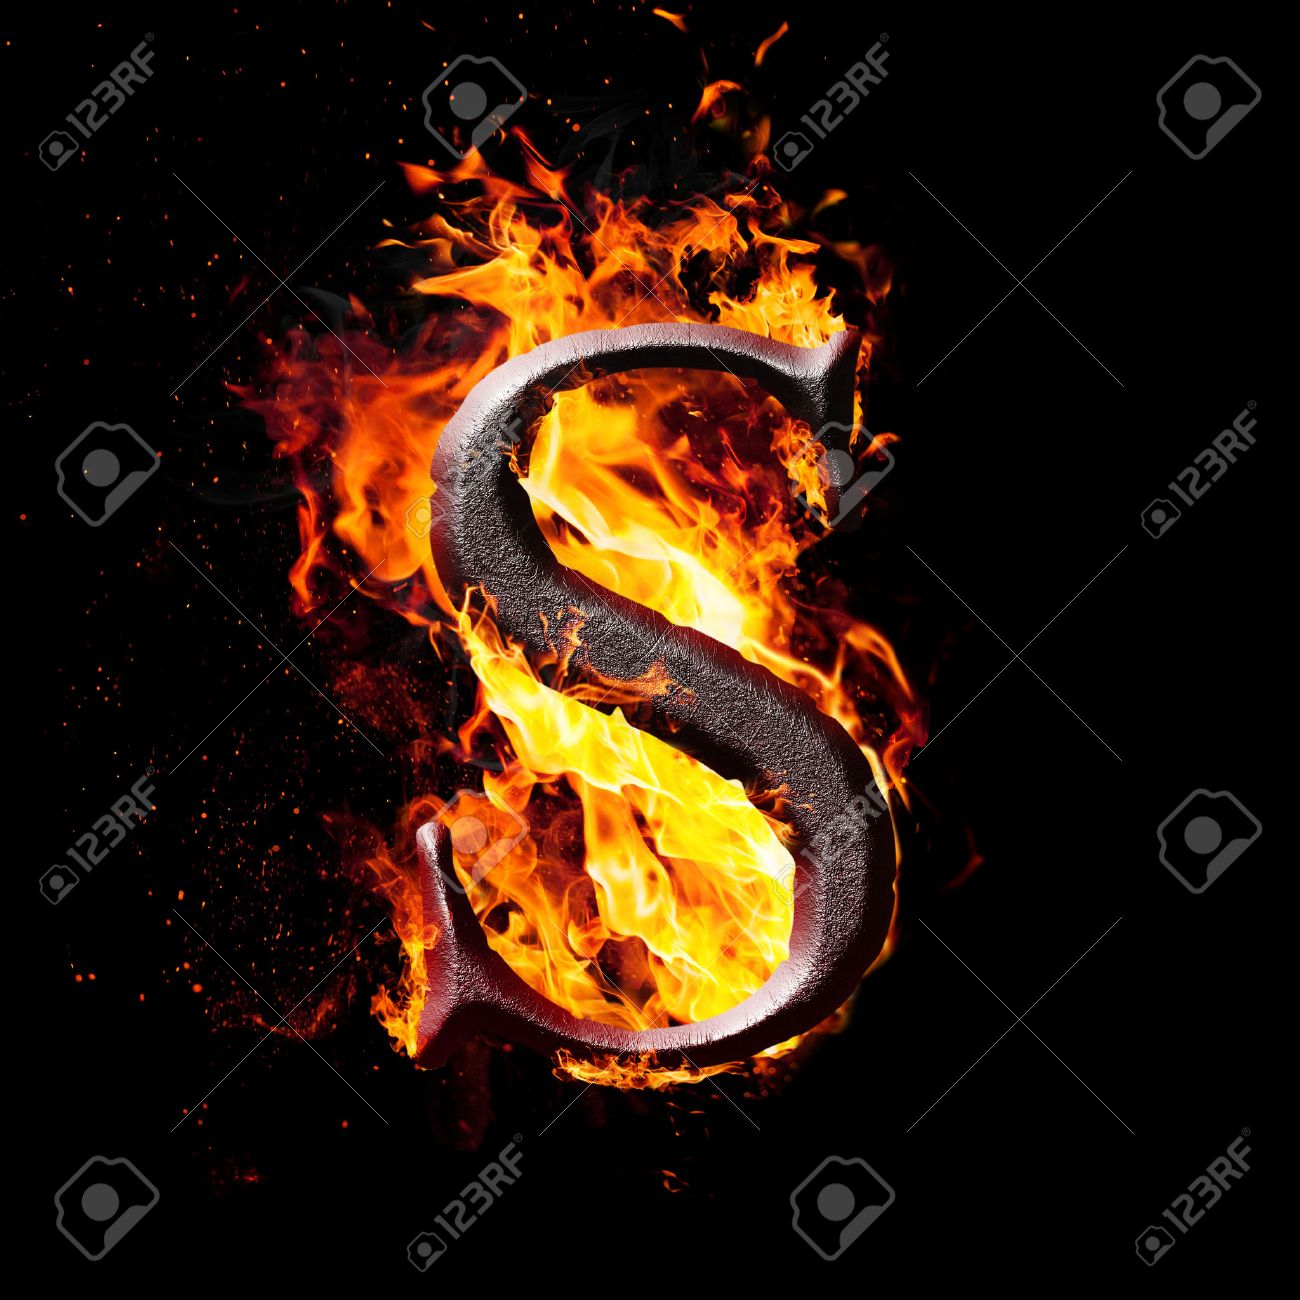 Letters And Symbols In Fire Letter S Stock Photo Picture And